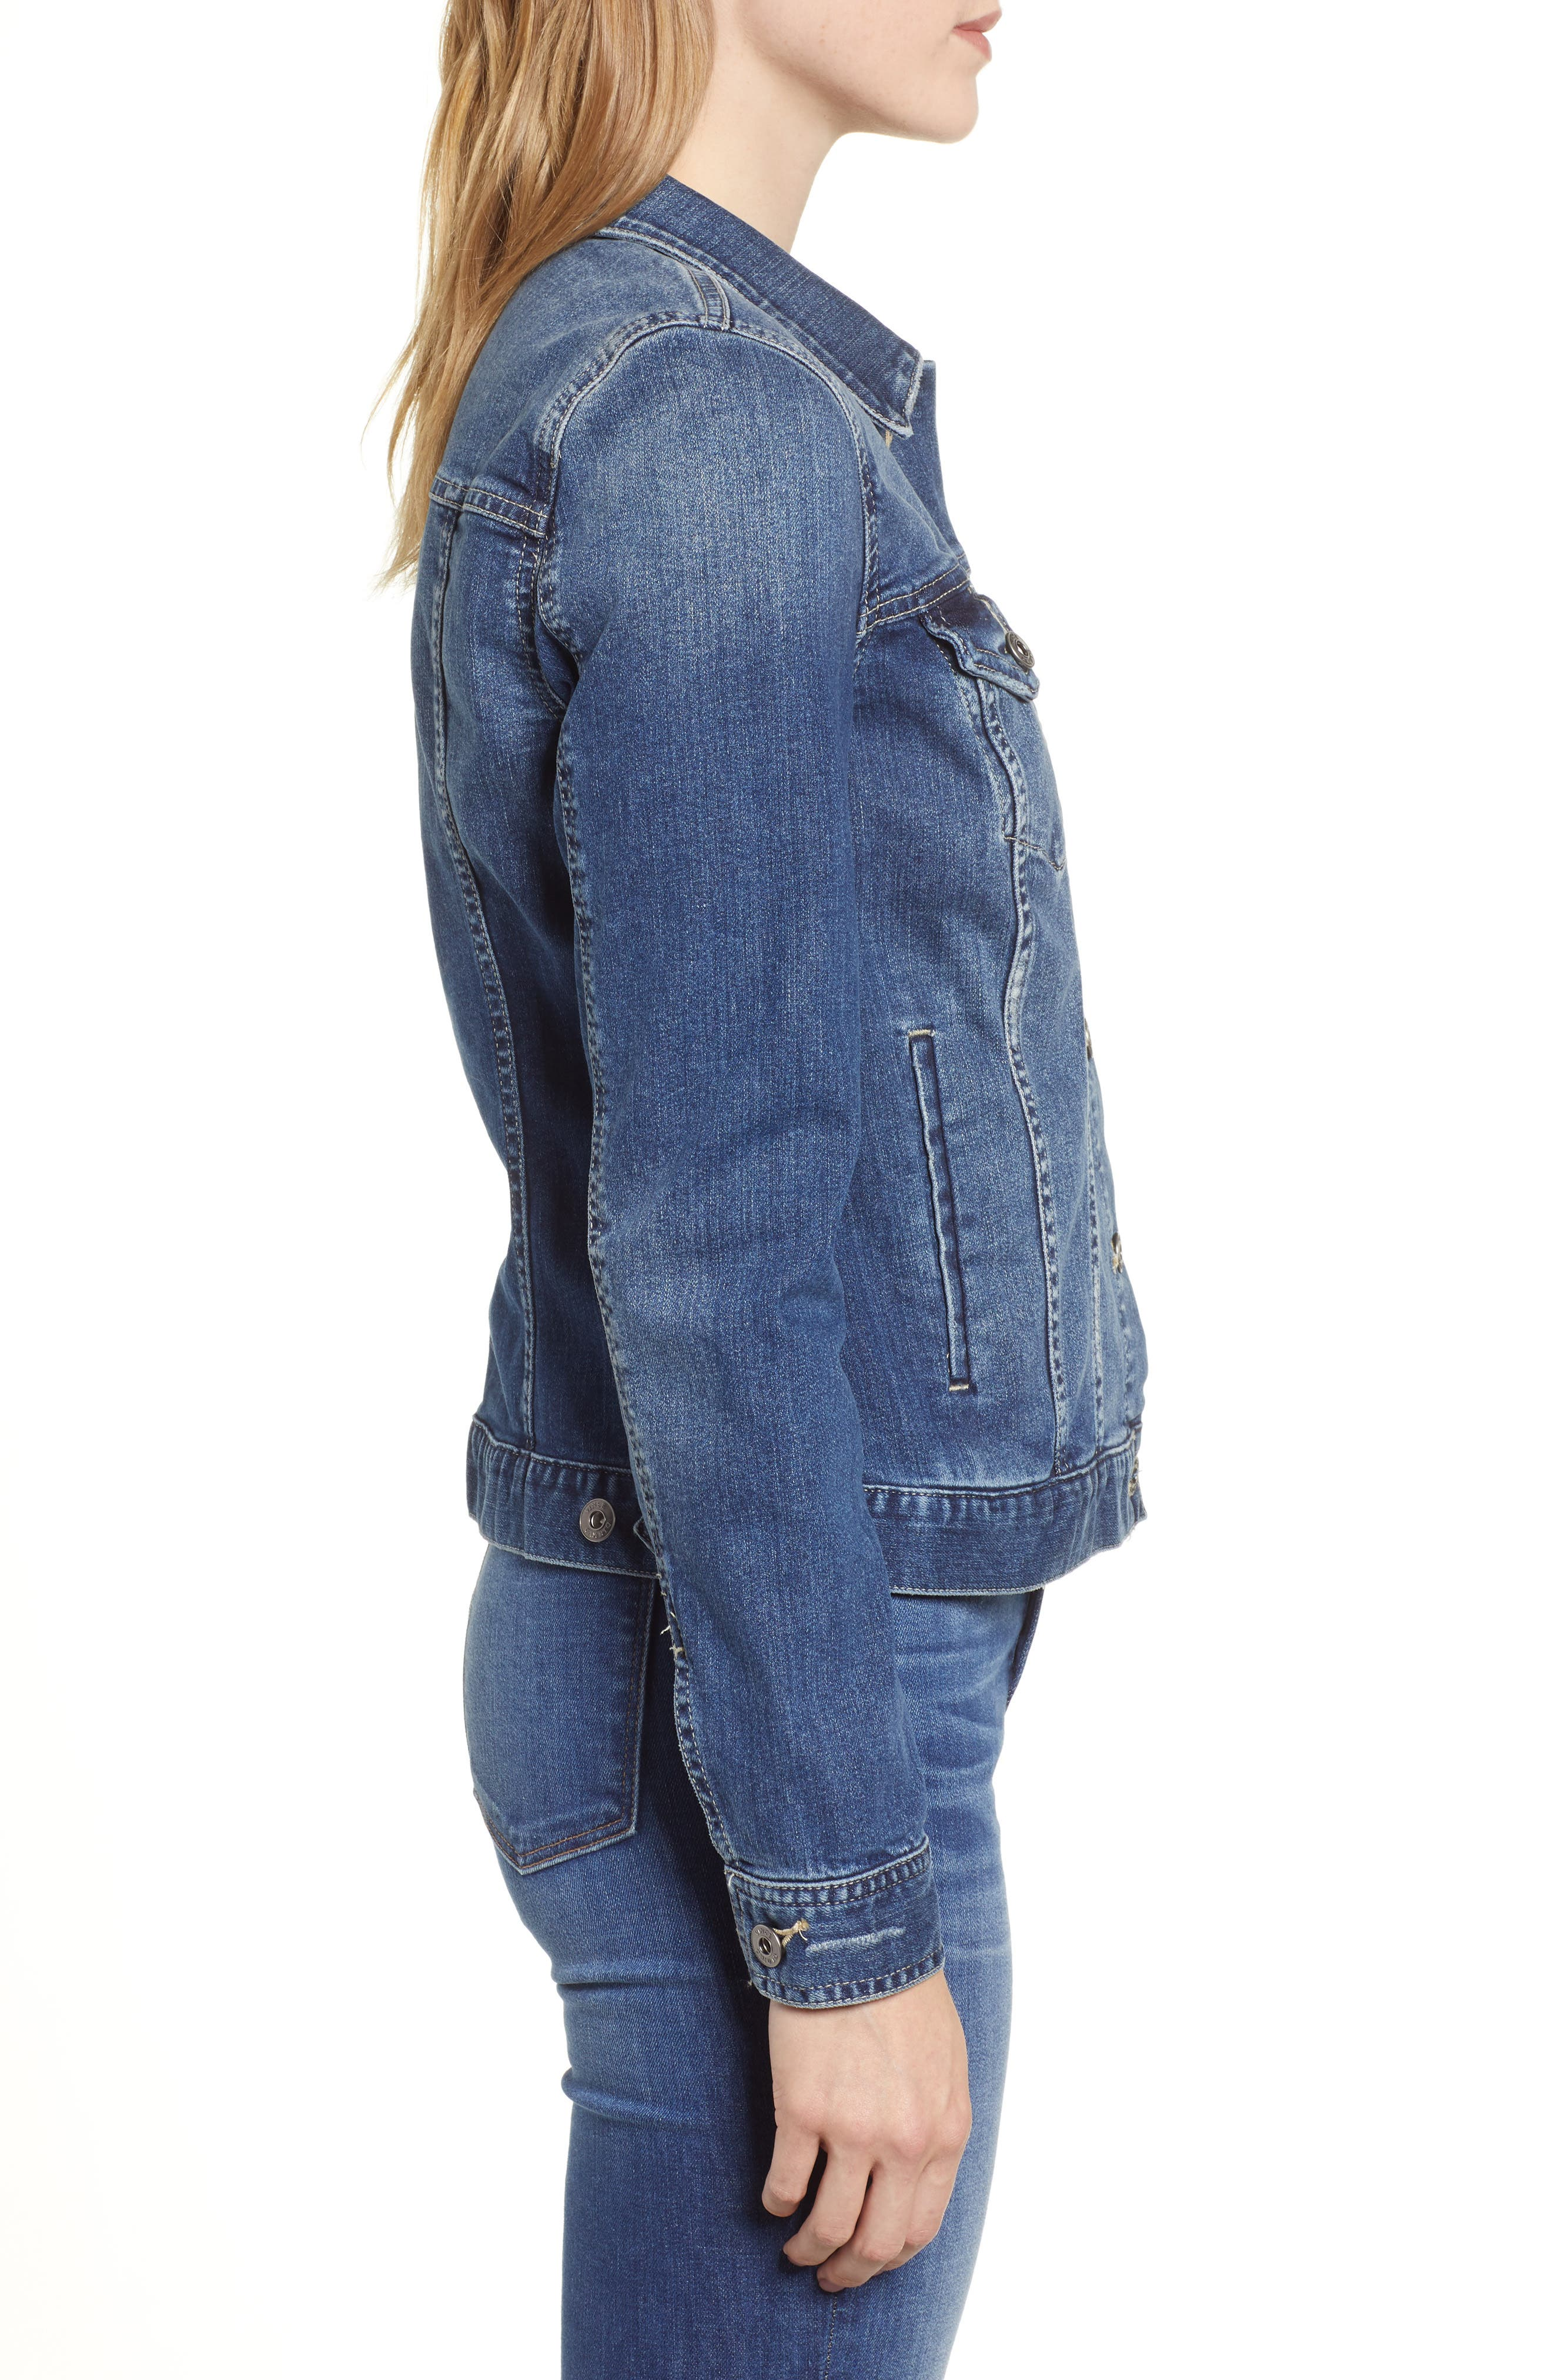 VINCE CAMUTO, Two by Vince Camuto Jean Jacket, Alternate thumbnail 5, color, AUTHENTIC